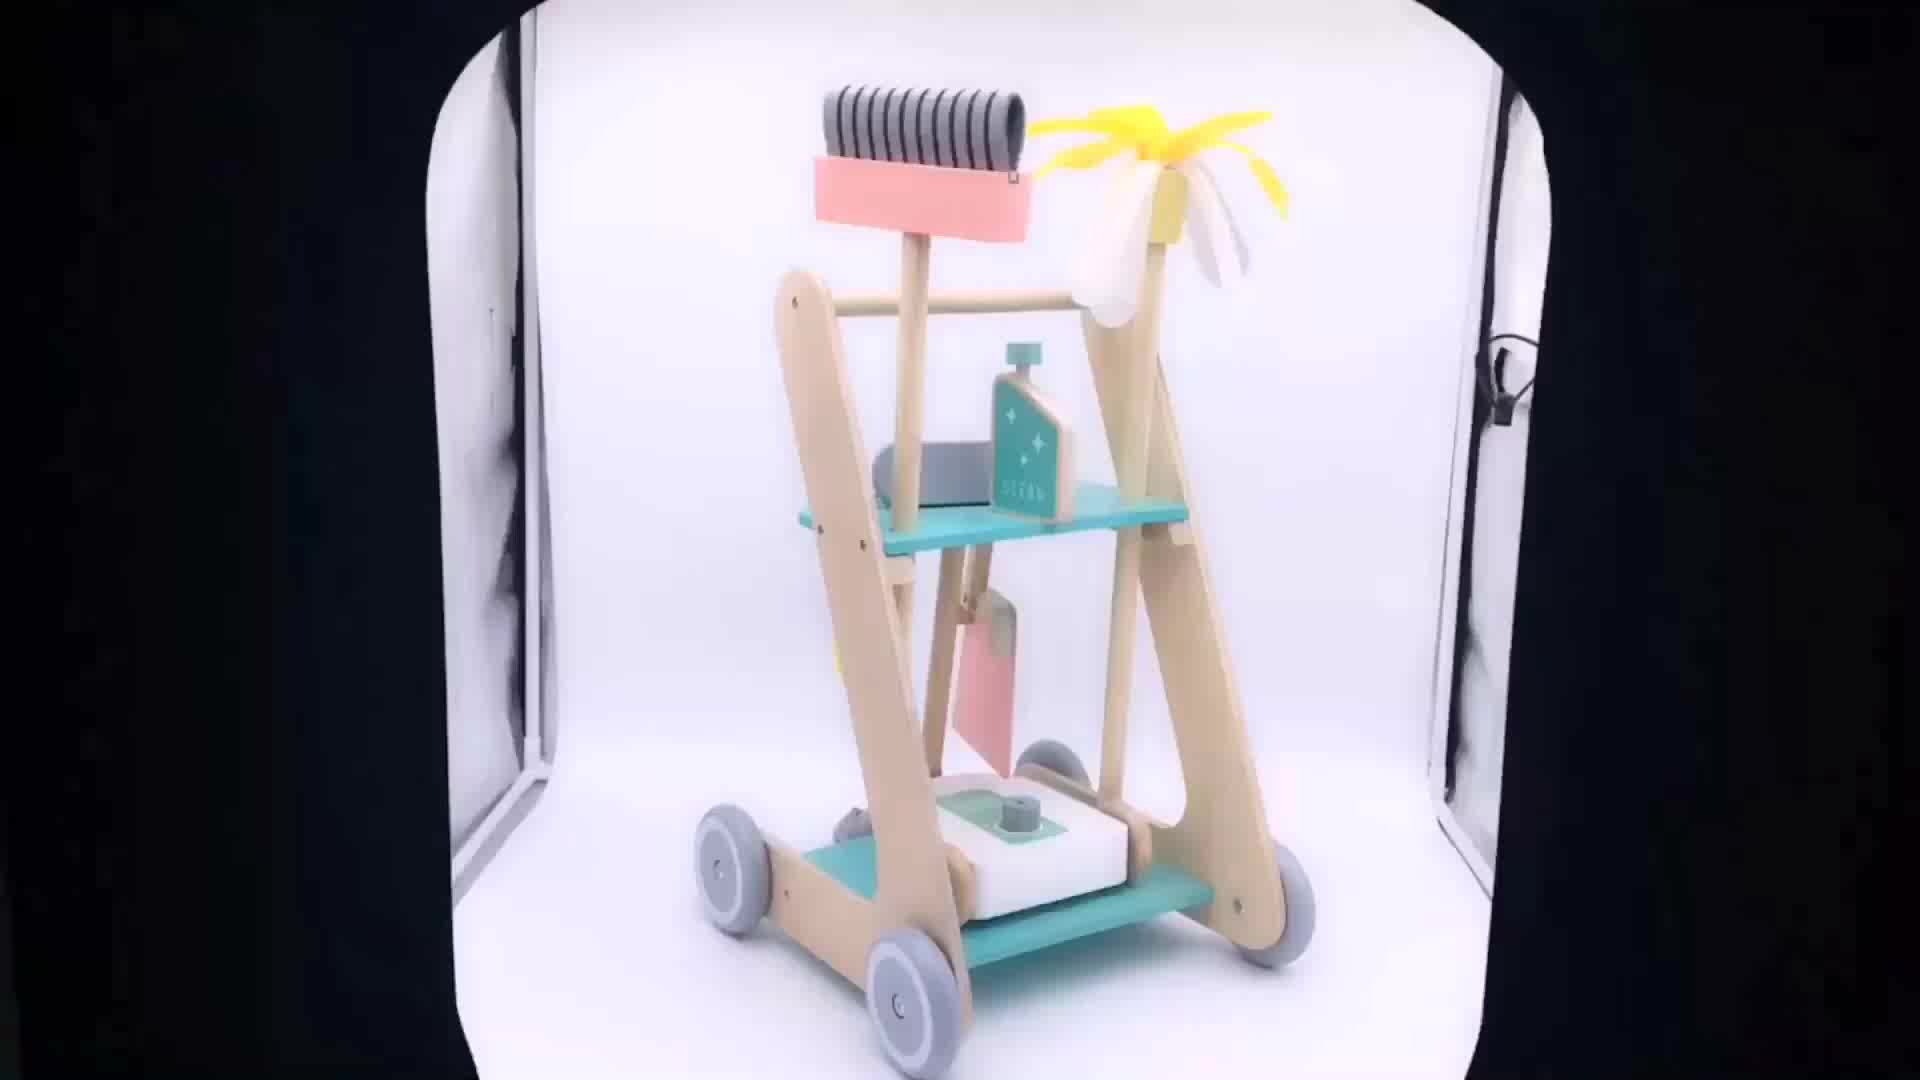 New arrival kids pretend play wooden toy cleaning set with broom W10D194